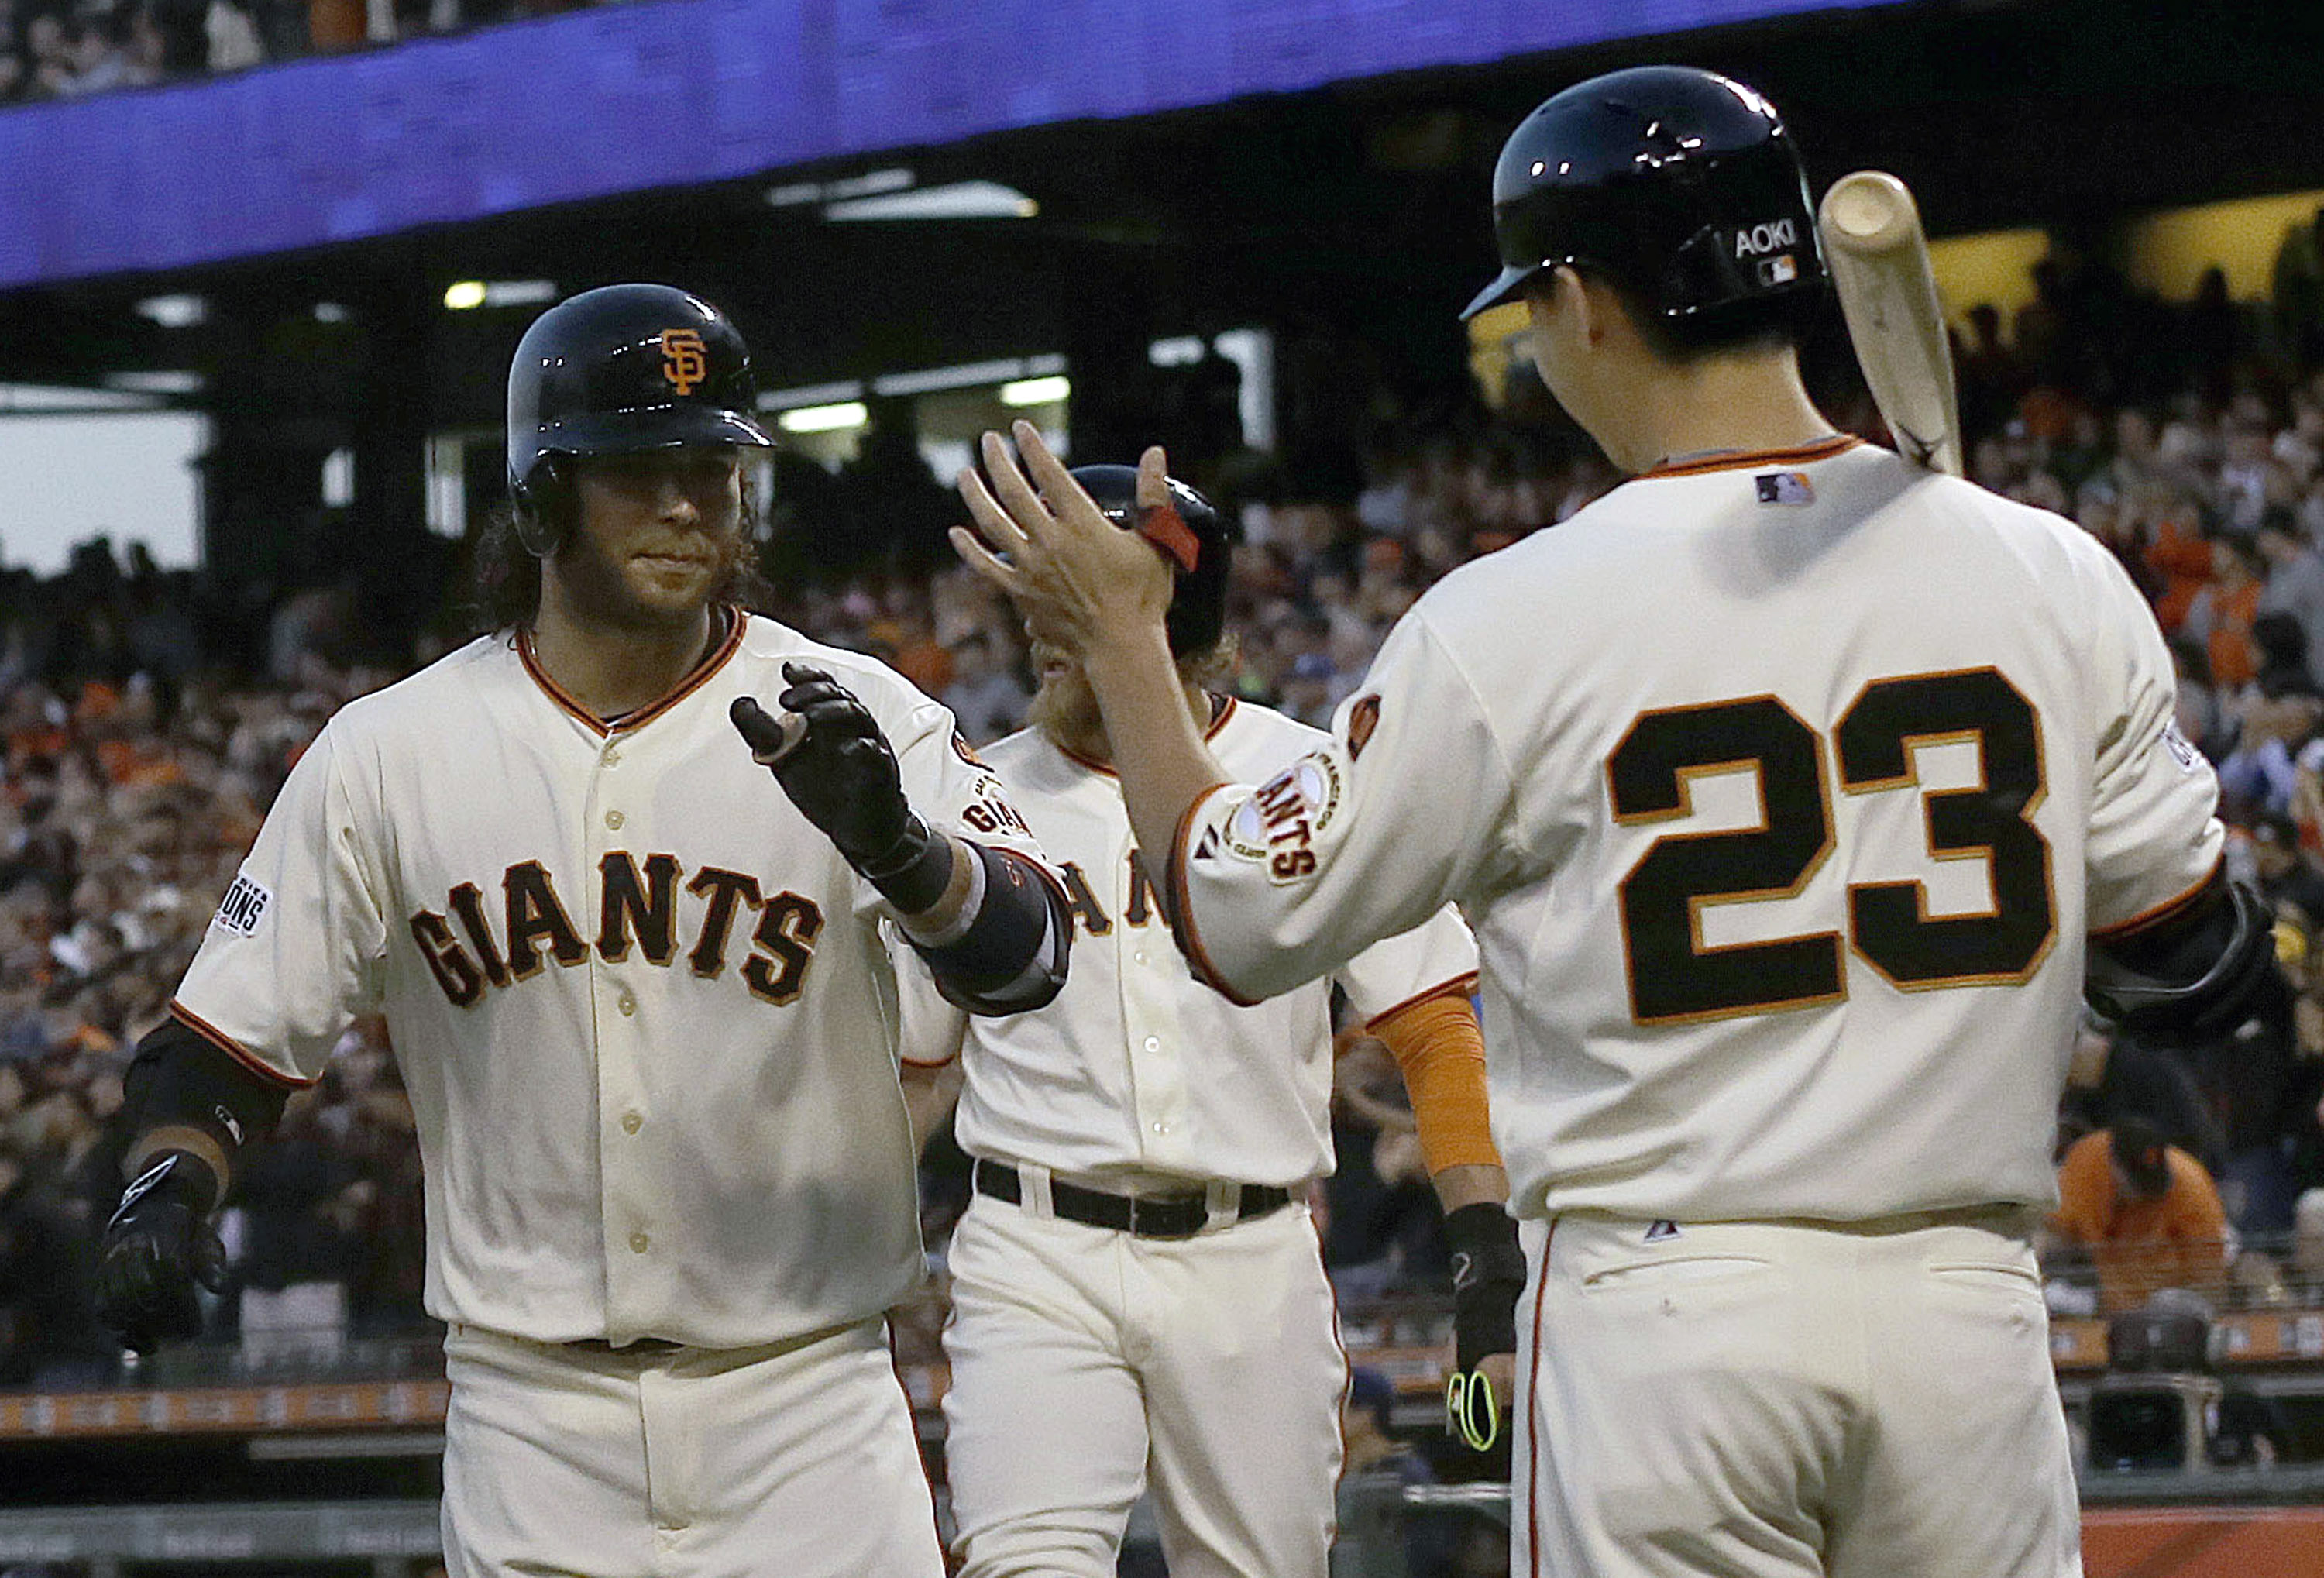 San Francisco Giants' Brandon Crawford, left, is congratulated by Nori Aoki (23) after hitting a two-run home run that scored Hunter Pence, rear, against the Milwaukee Brewers during the fourth inning of a baseball game in San Francisco, Monday, July 27,